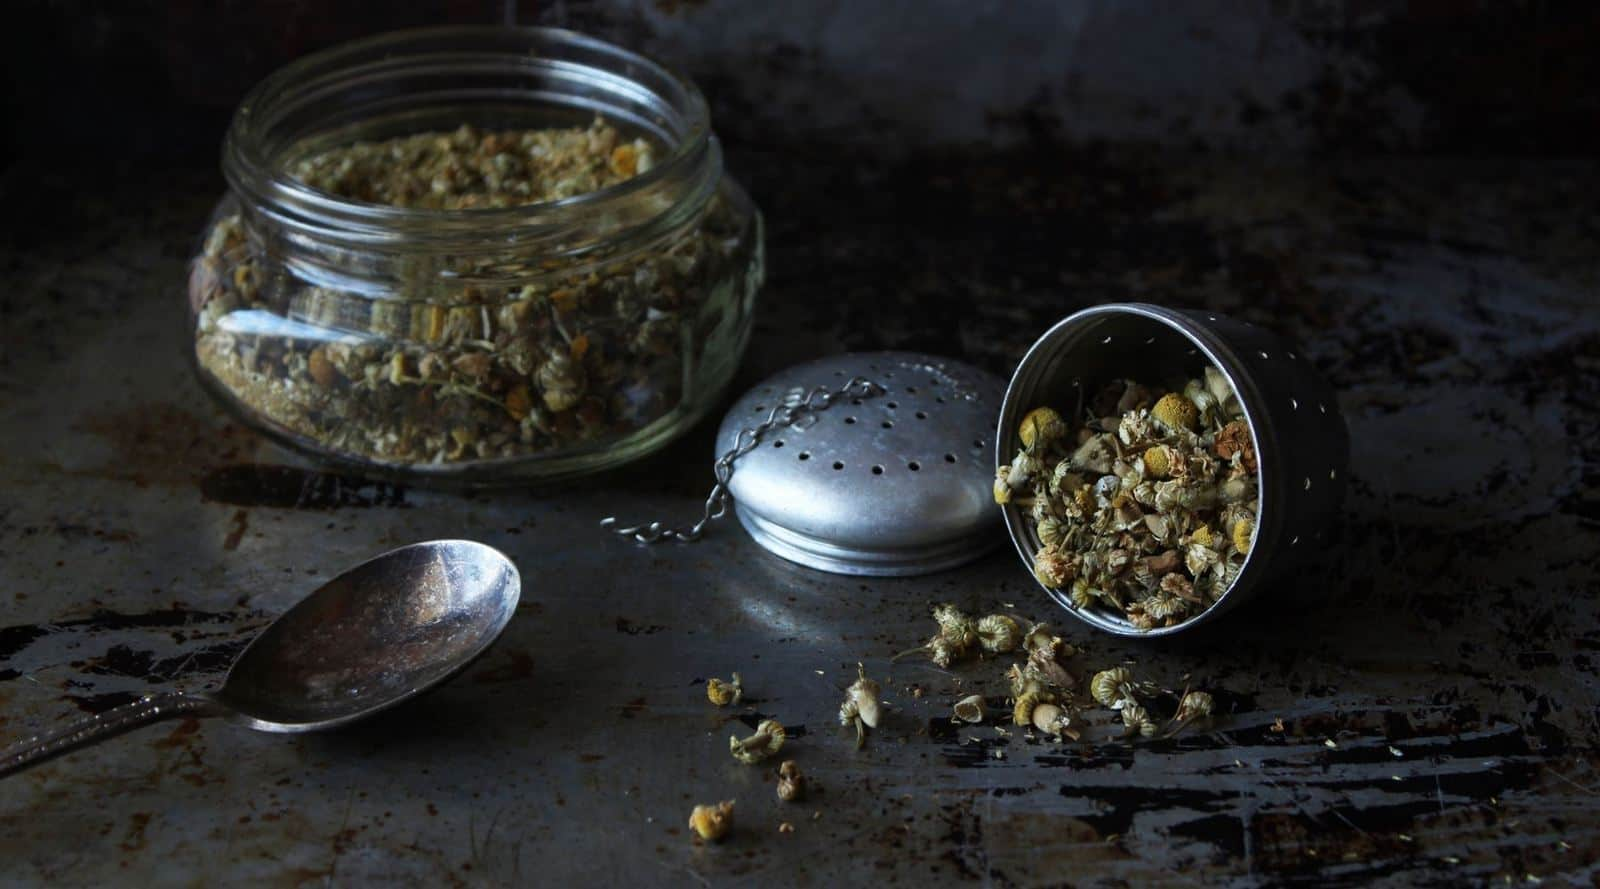 how and when can you reuse loose leaf tea?